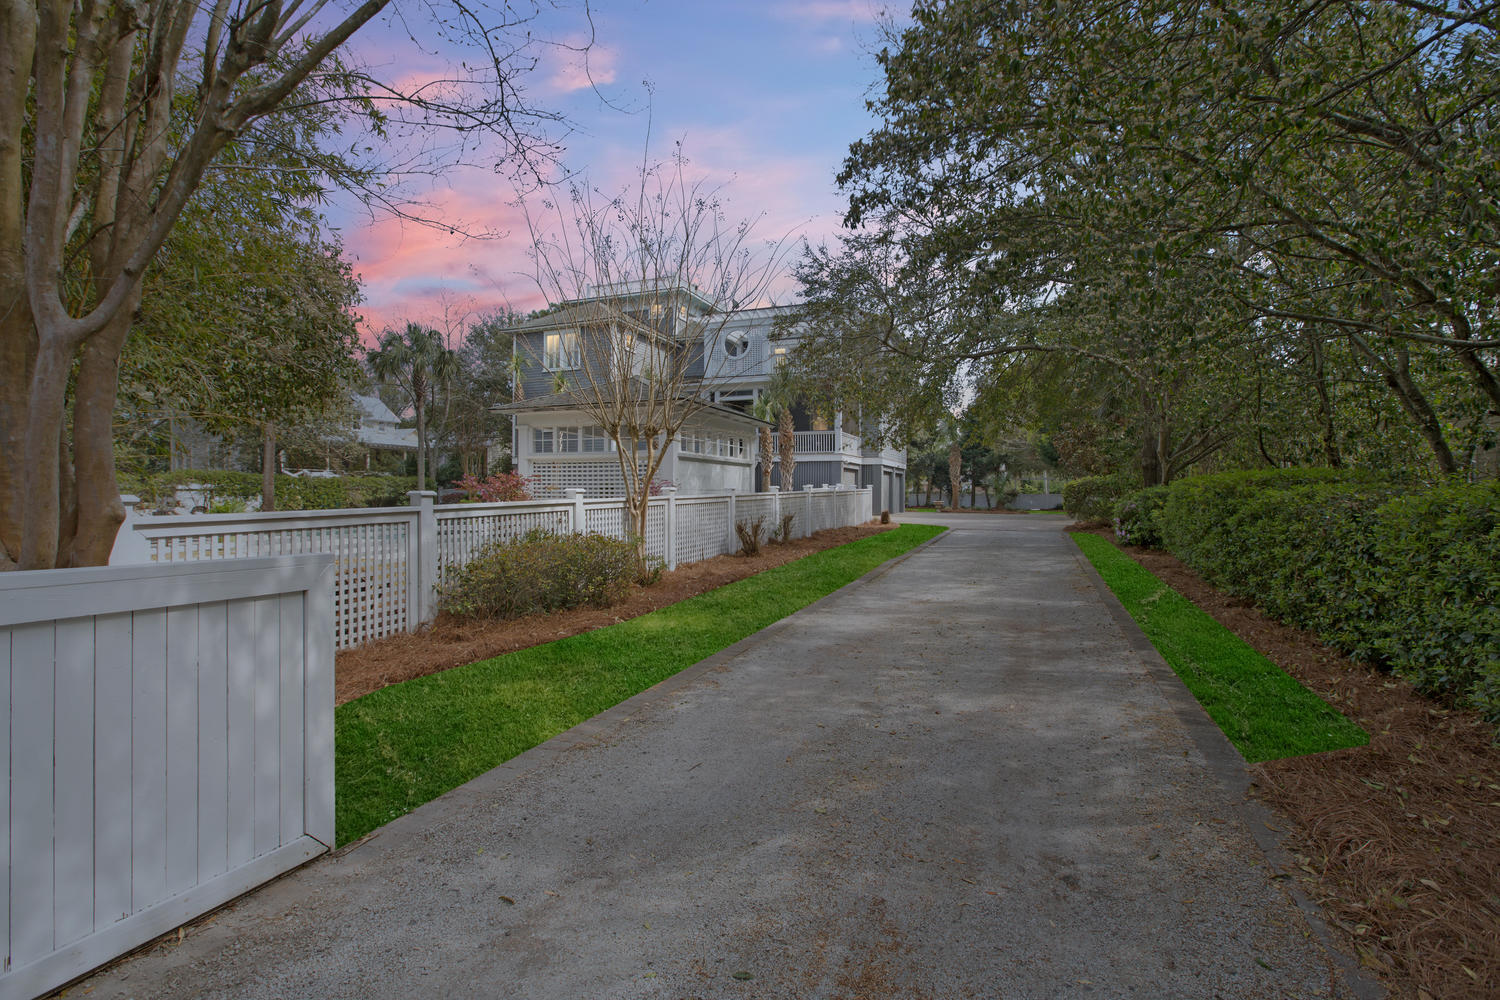 Photo of 2257 Myrtle Ave, Sullivan's Island, SC 29482